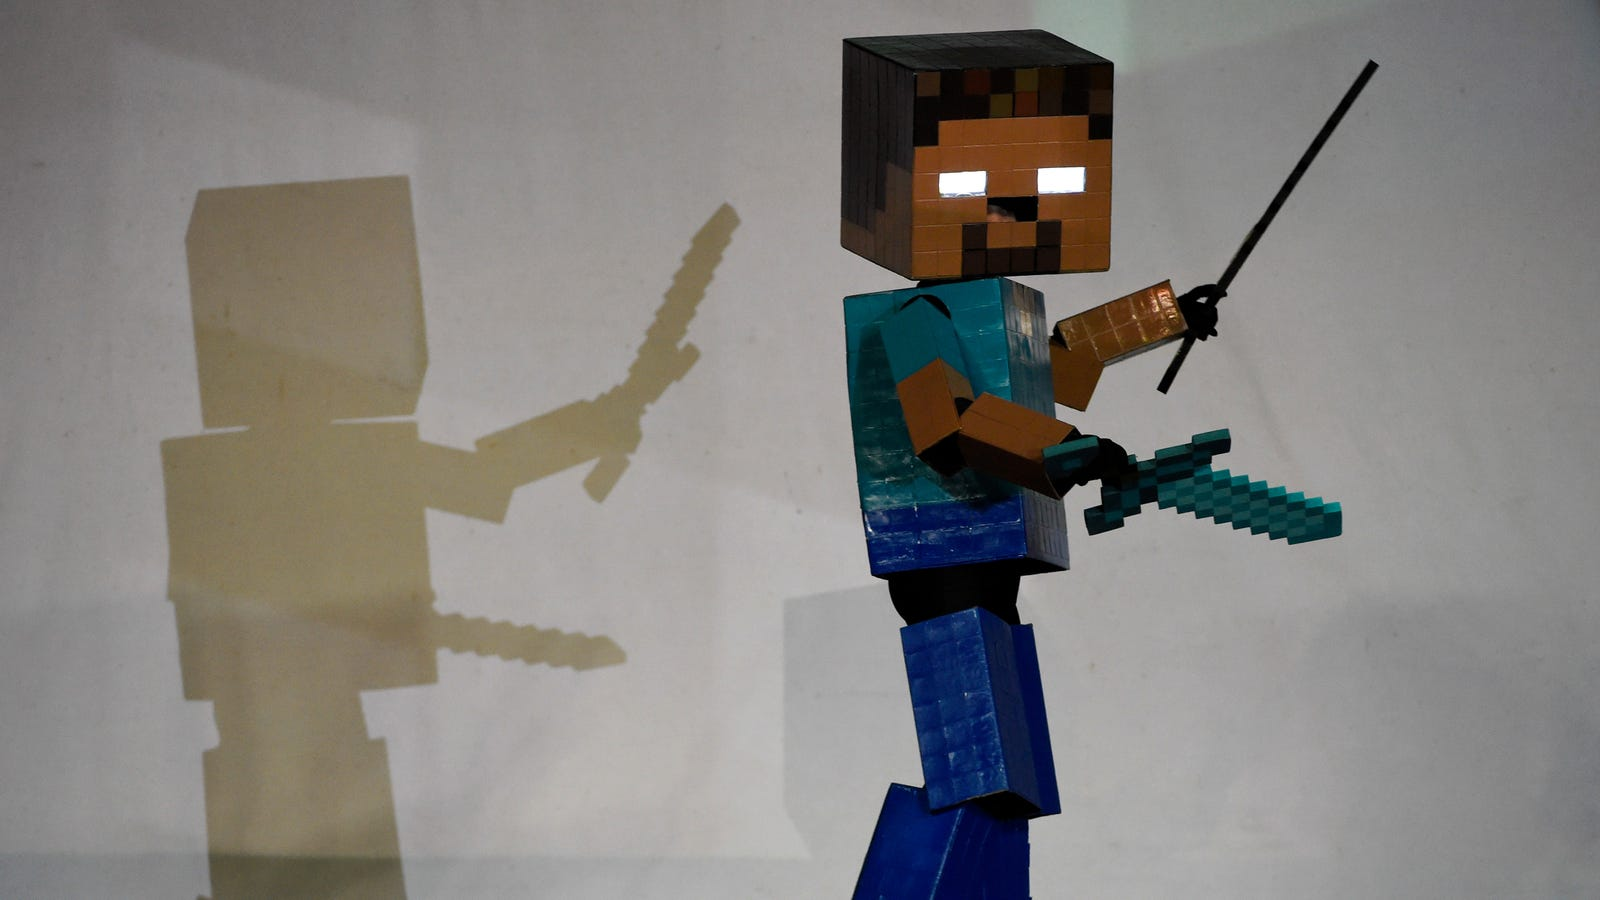 Symantec Concludes Just Eight Google Play 'Minecraft' Apps May Have Added Millions to Botnets